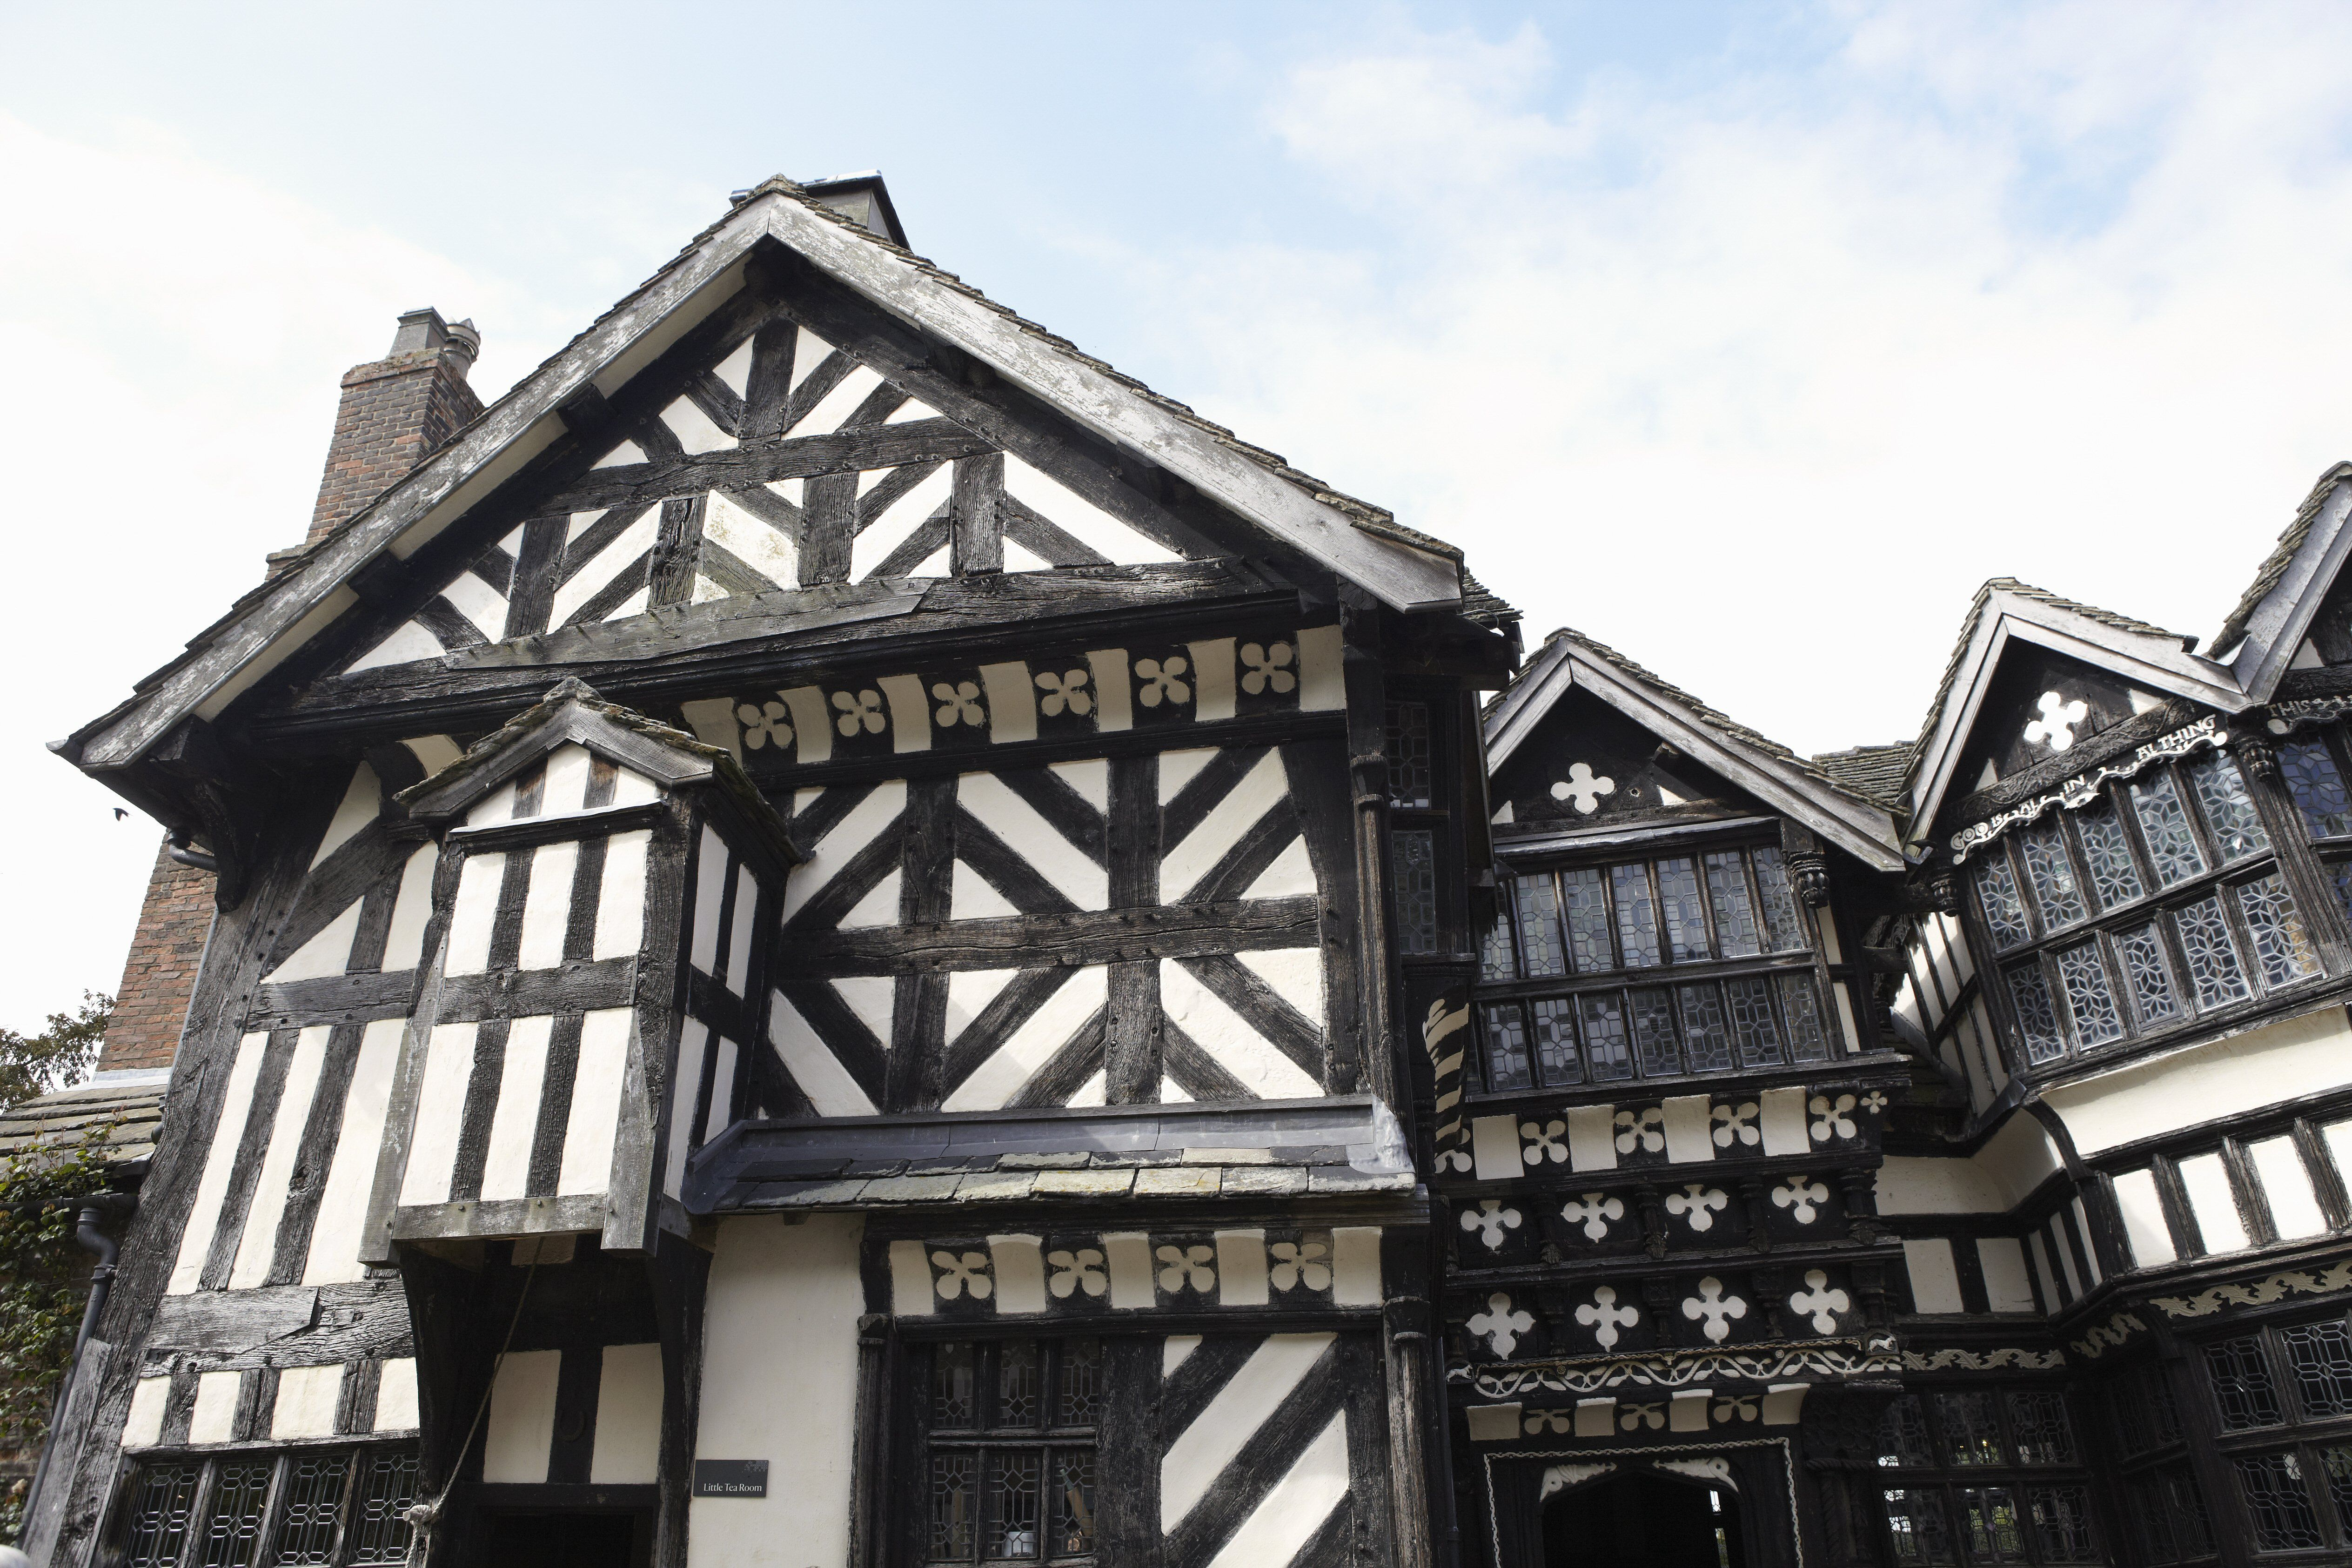 The Medieval Look Of Half Timbering